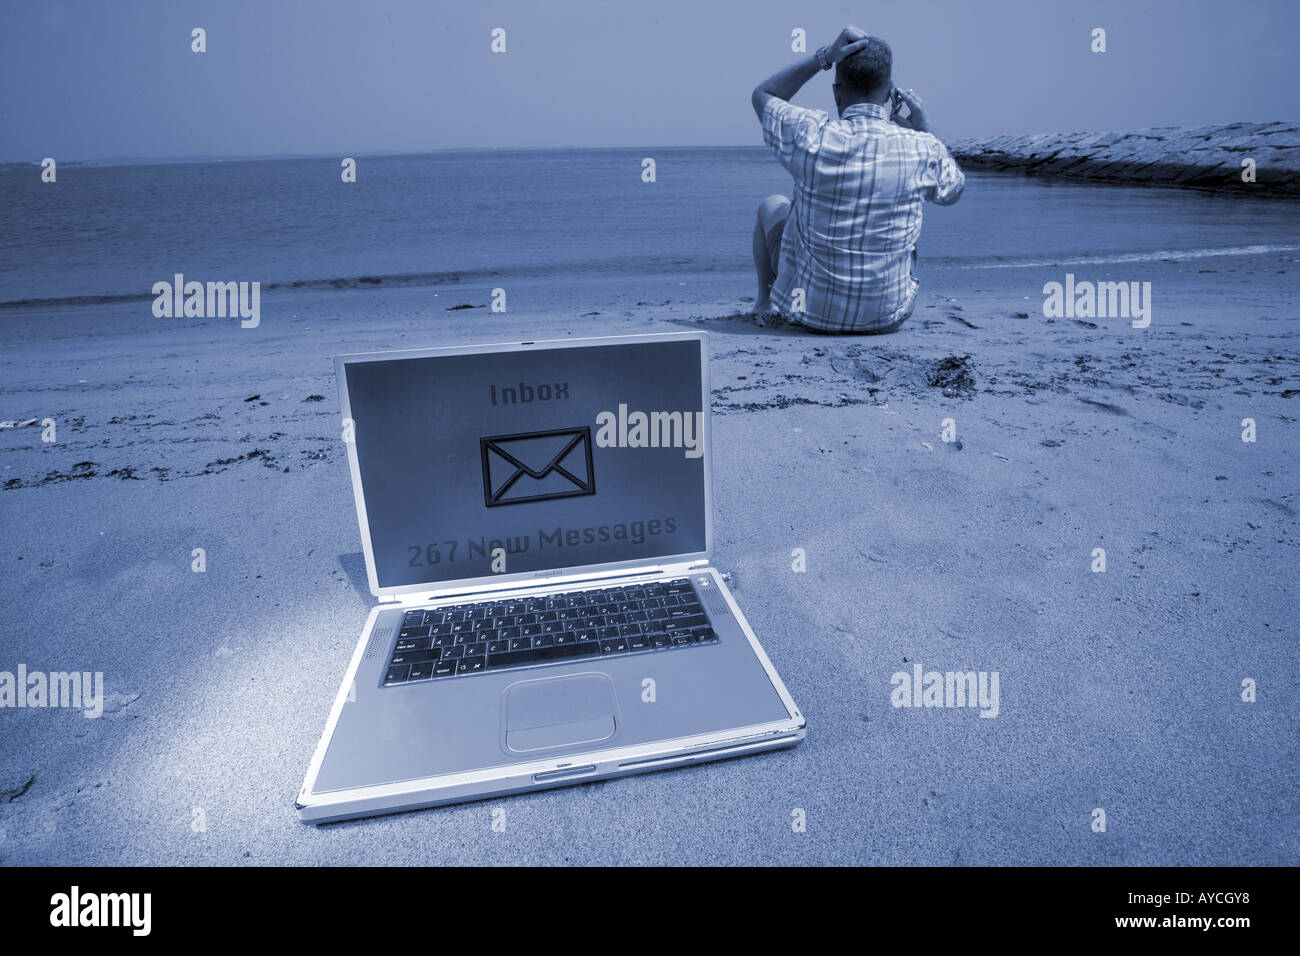 Man returning calls overworked on beach with cell phone and laptop on vacation - Stock Image